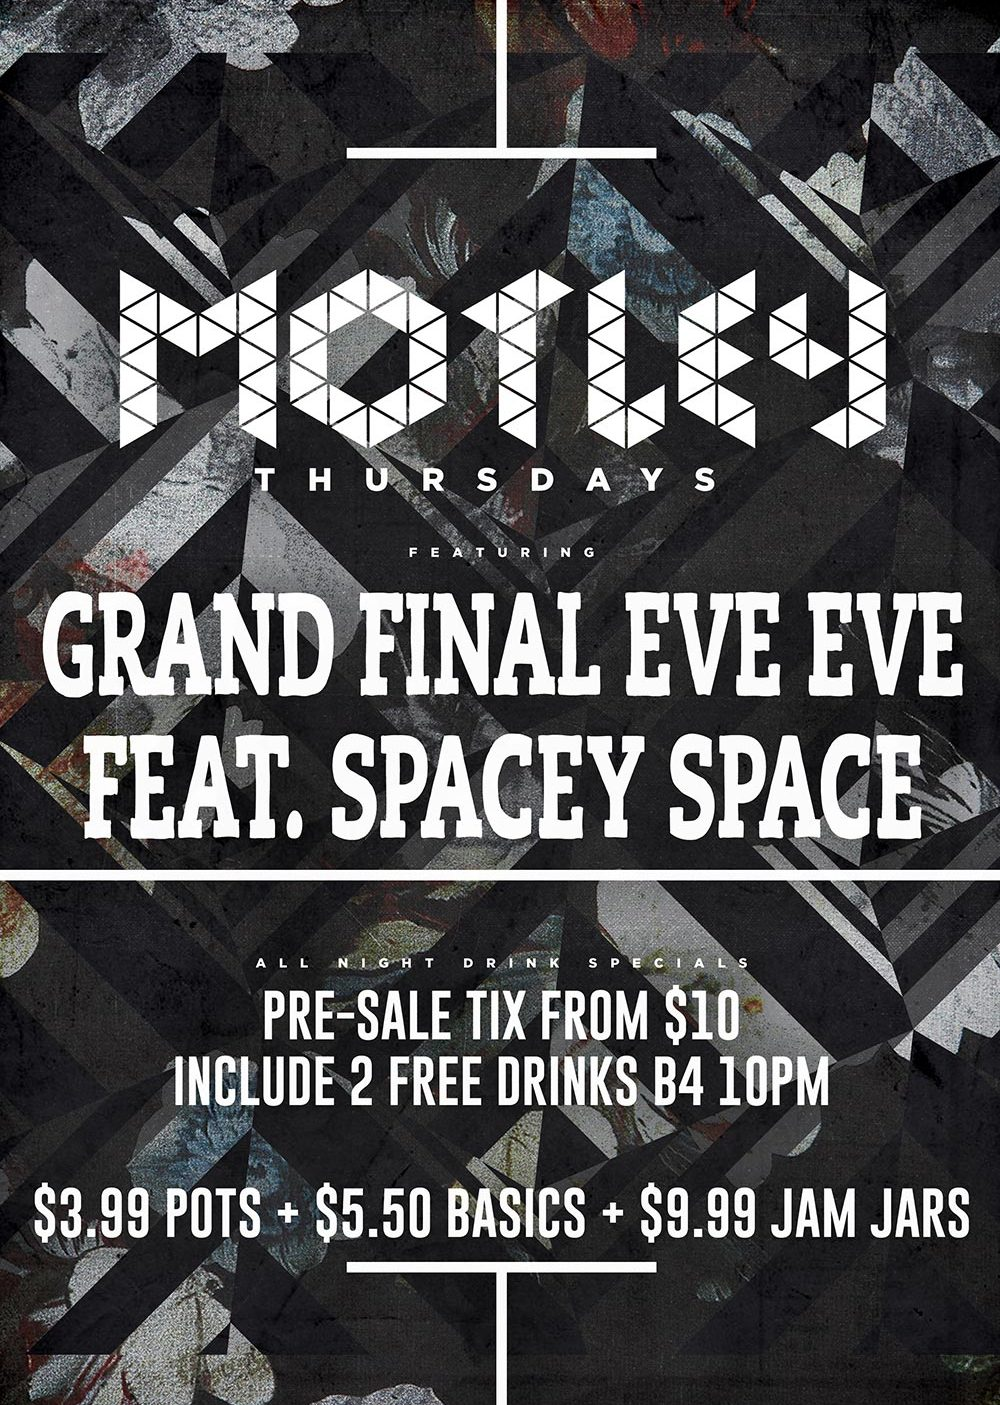 Motely Grand Final Eve Eve